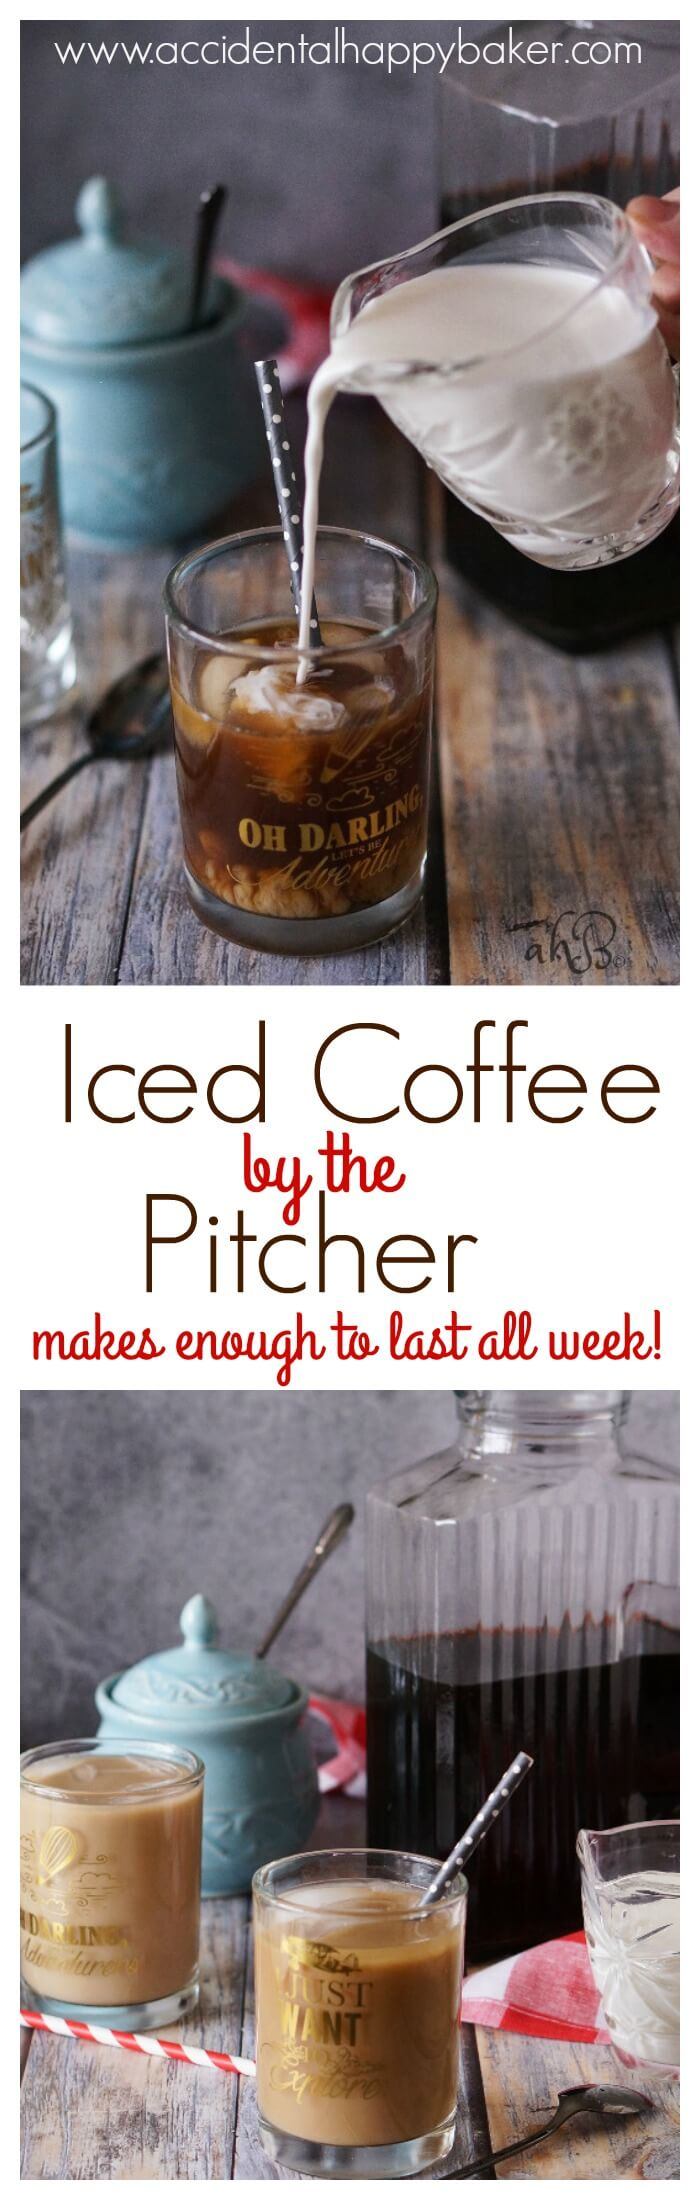 3 simple steps and you've got a pitcher of delicious iced coffee to last you the week! Say goodbye to expensive, over sweetened commercial iced coffee with this easy DIY recipe found on www.accidentalhappybaker.com @AHBamy